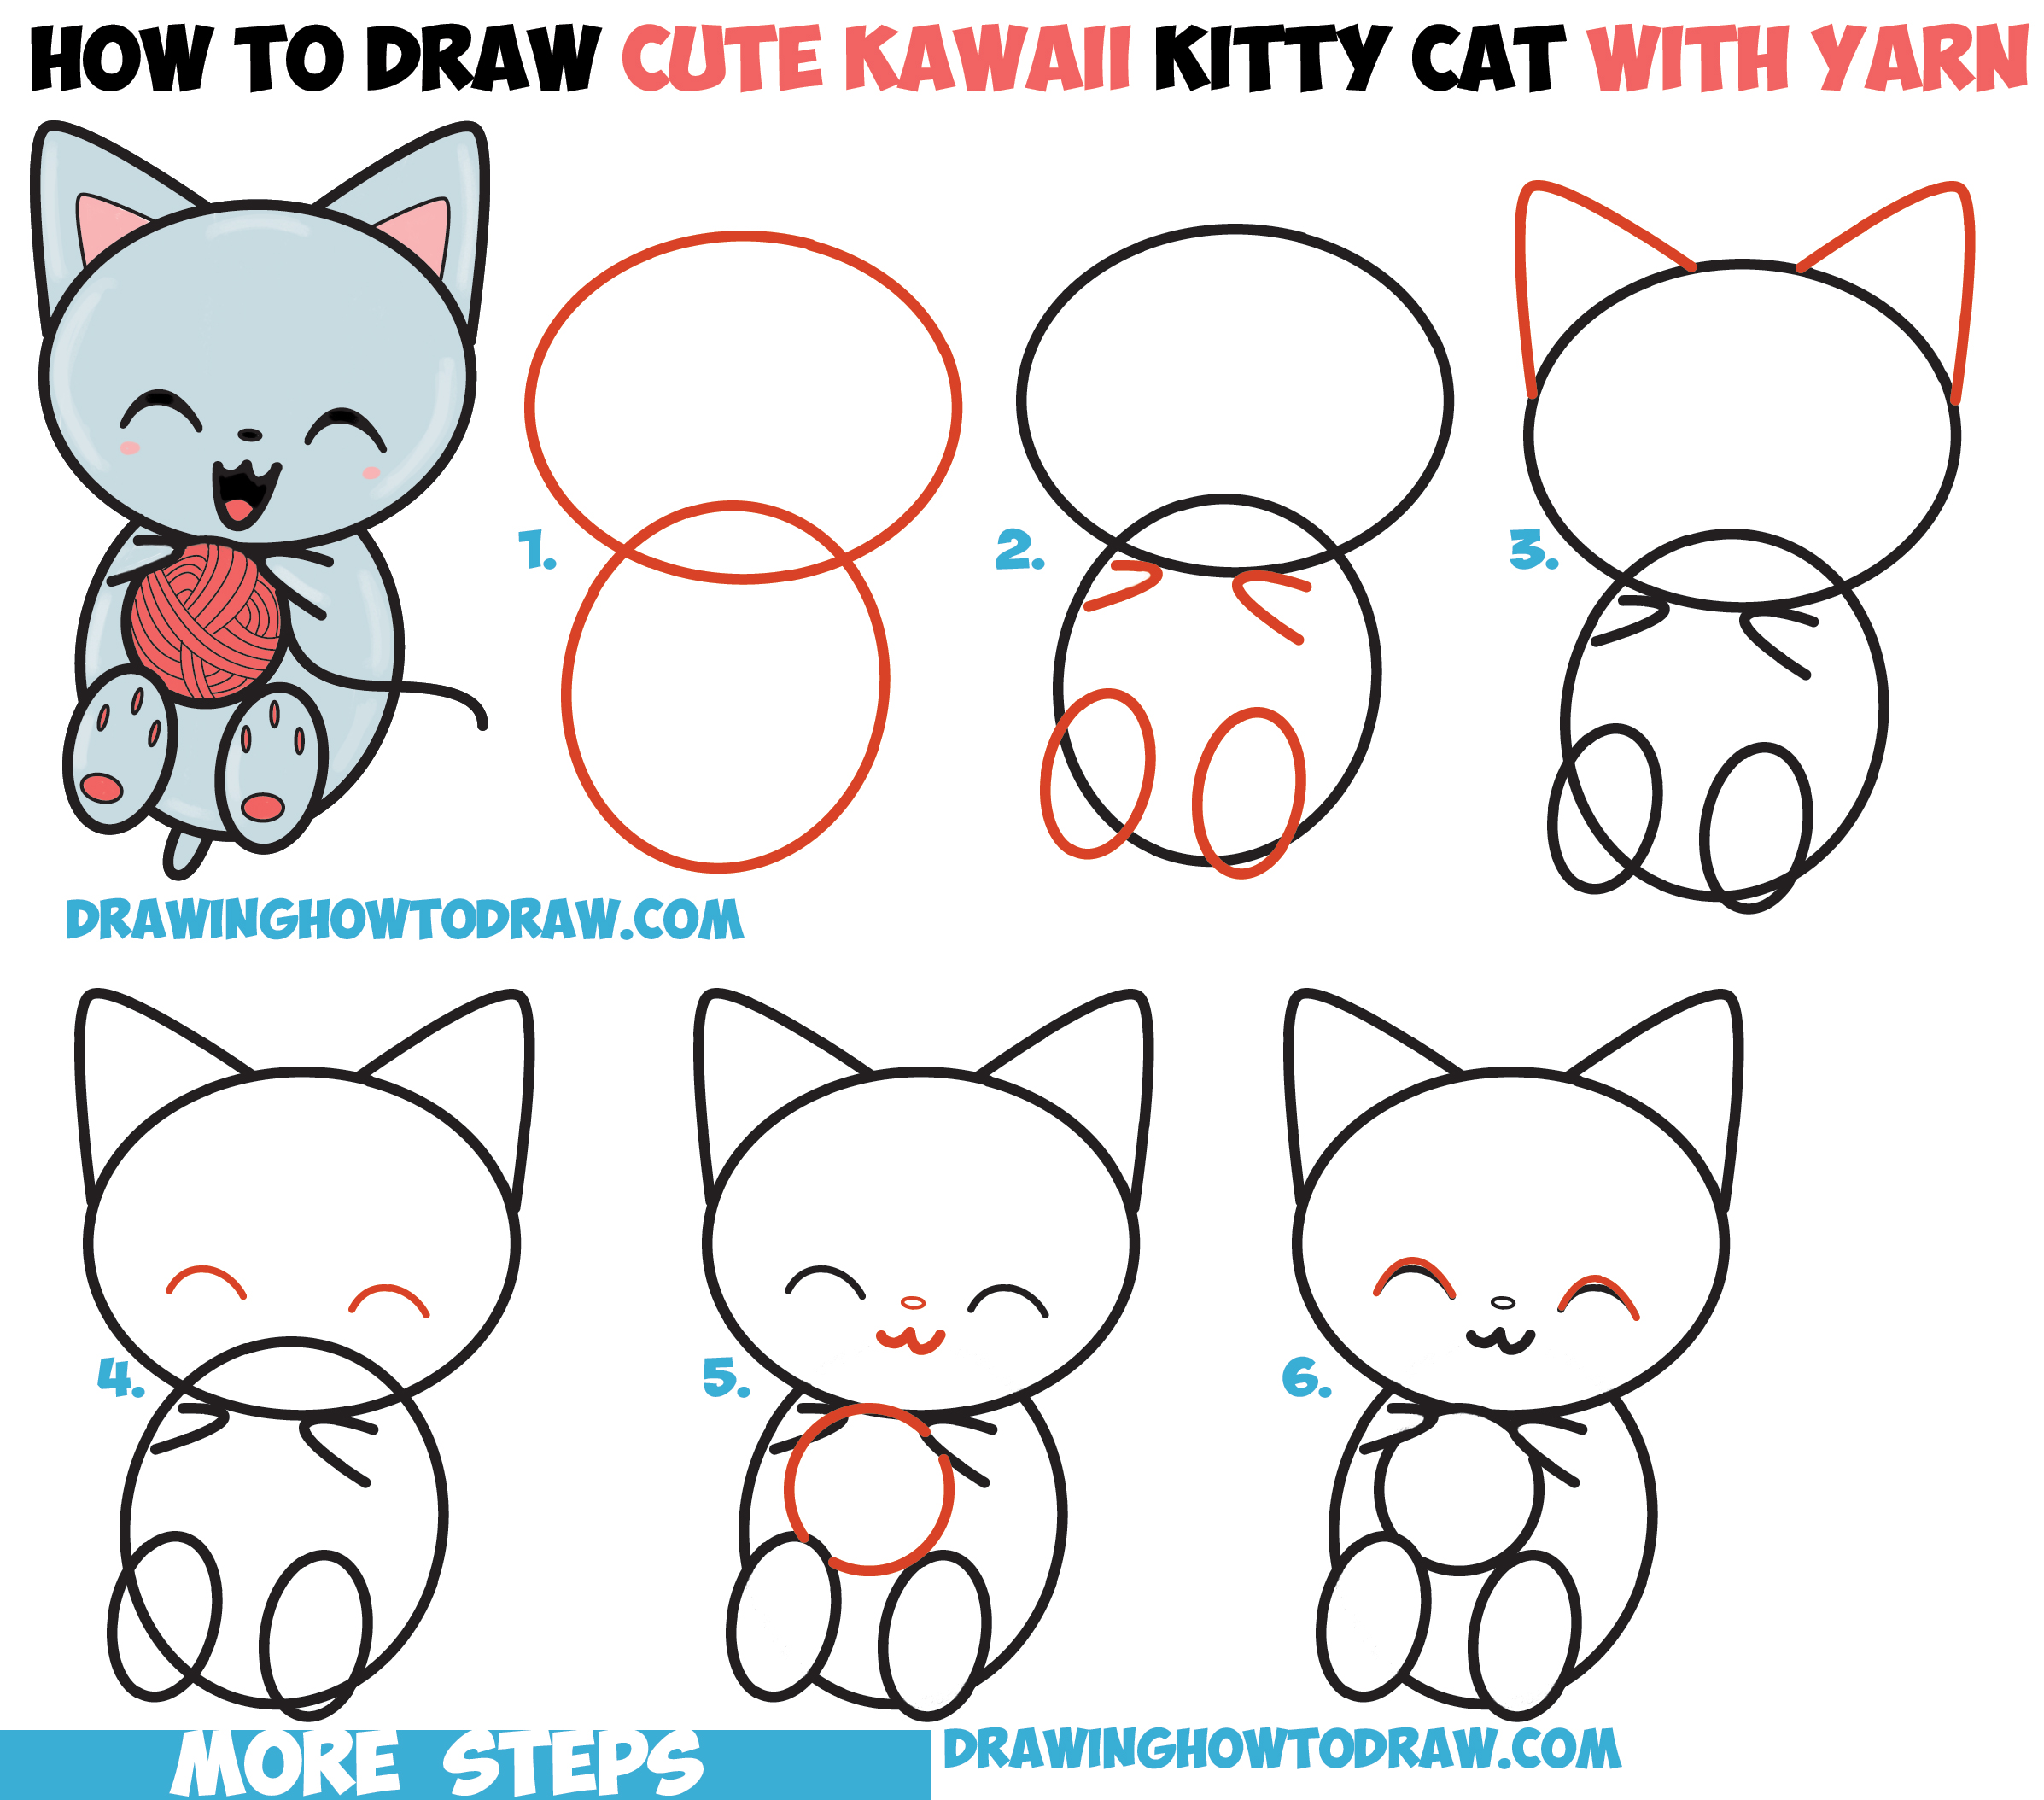 Drawn cat step by step #4